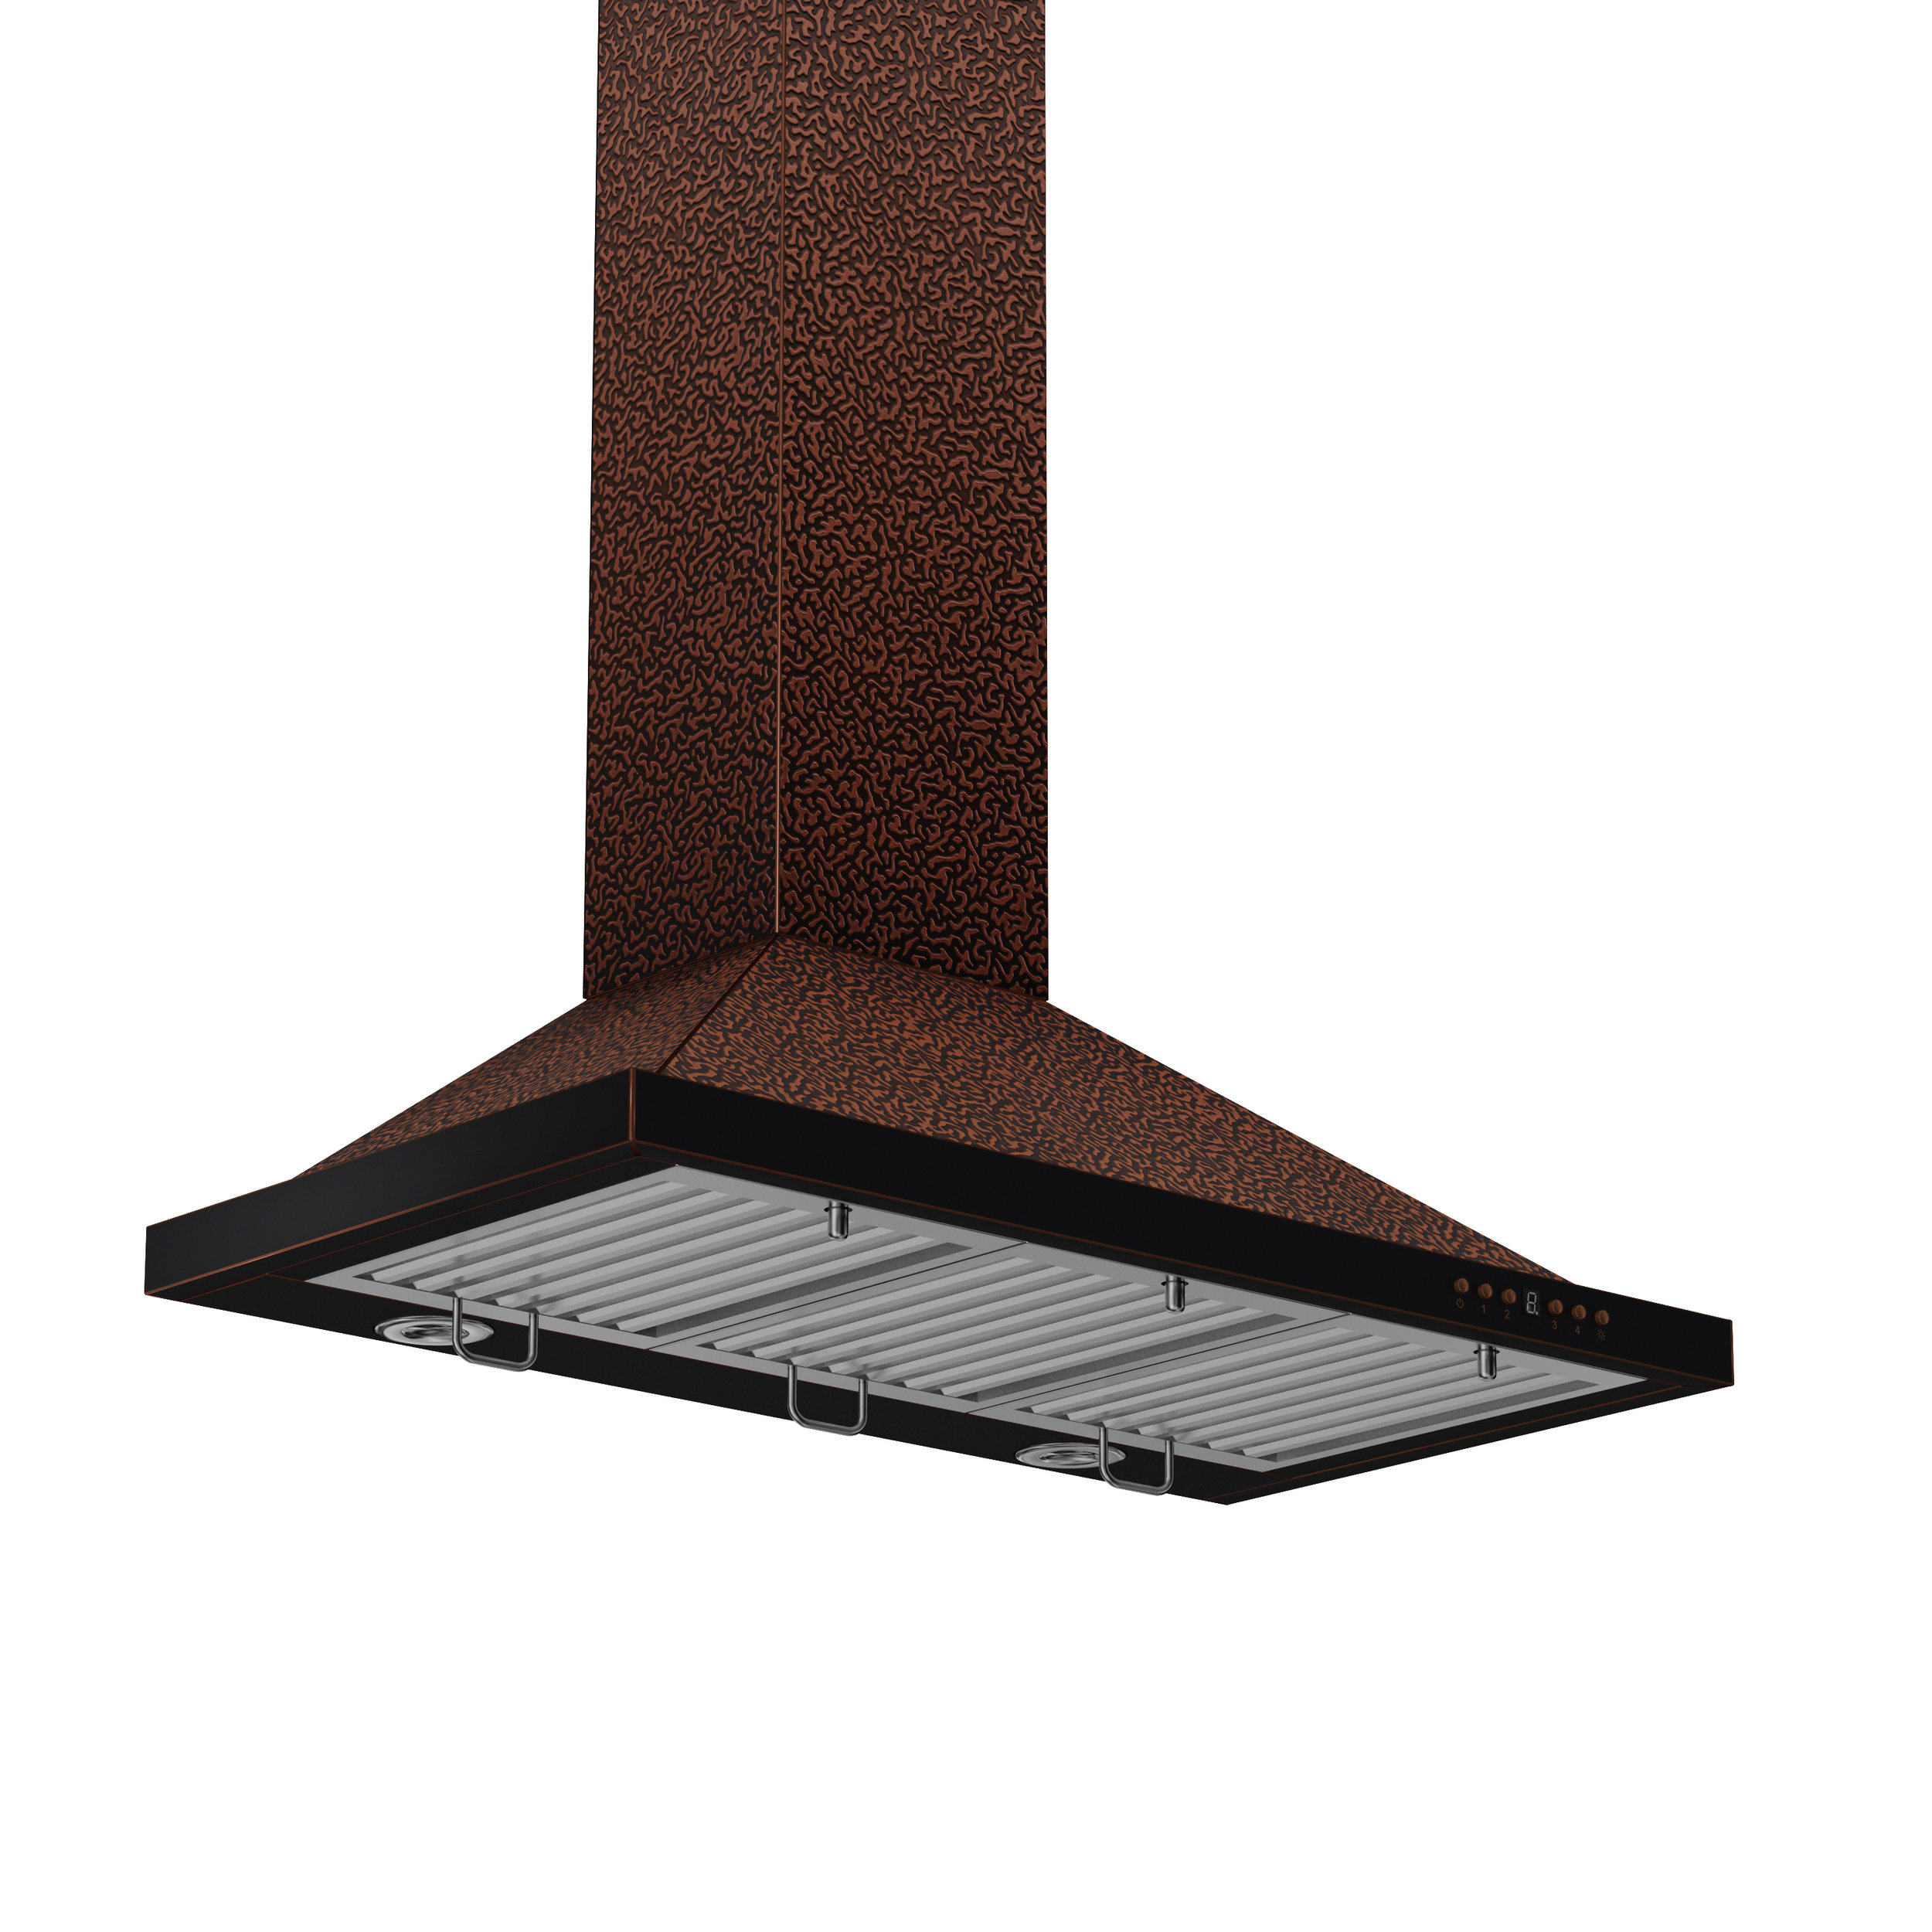 zline-copper-wall-mounted-range-hood-8KBE-side-under.jpg